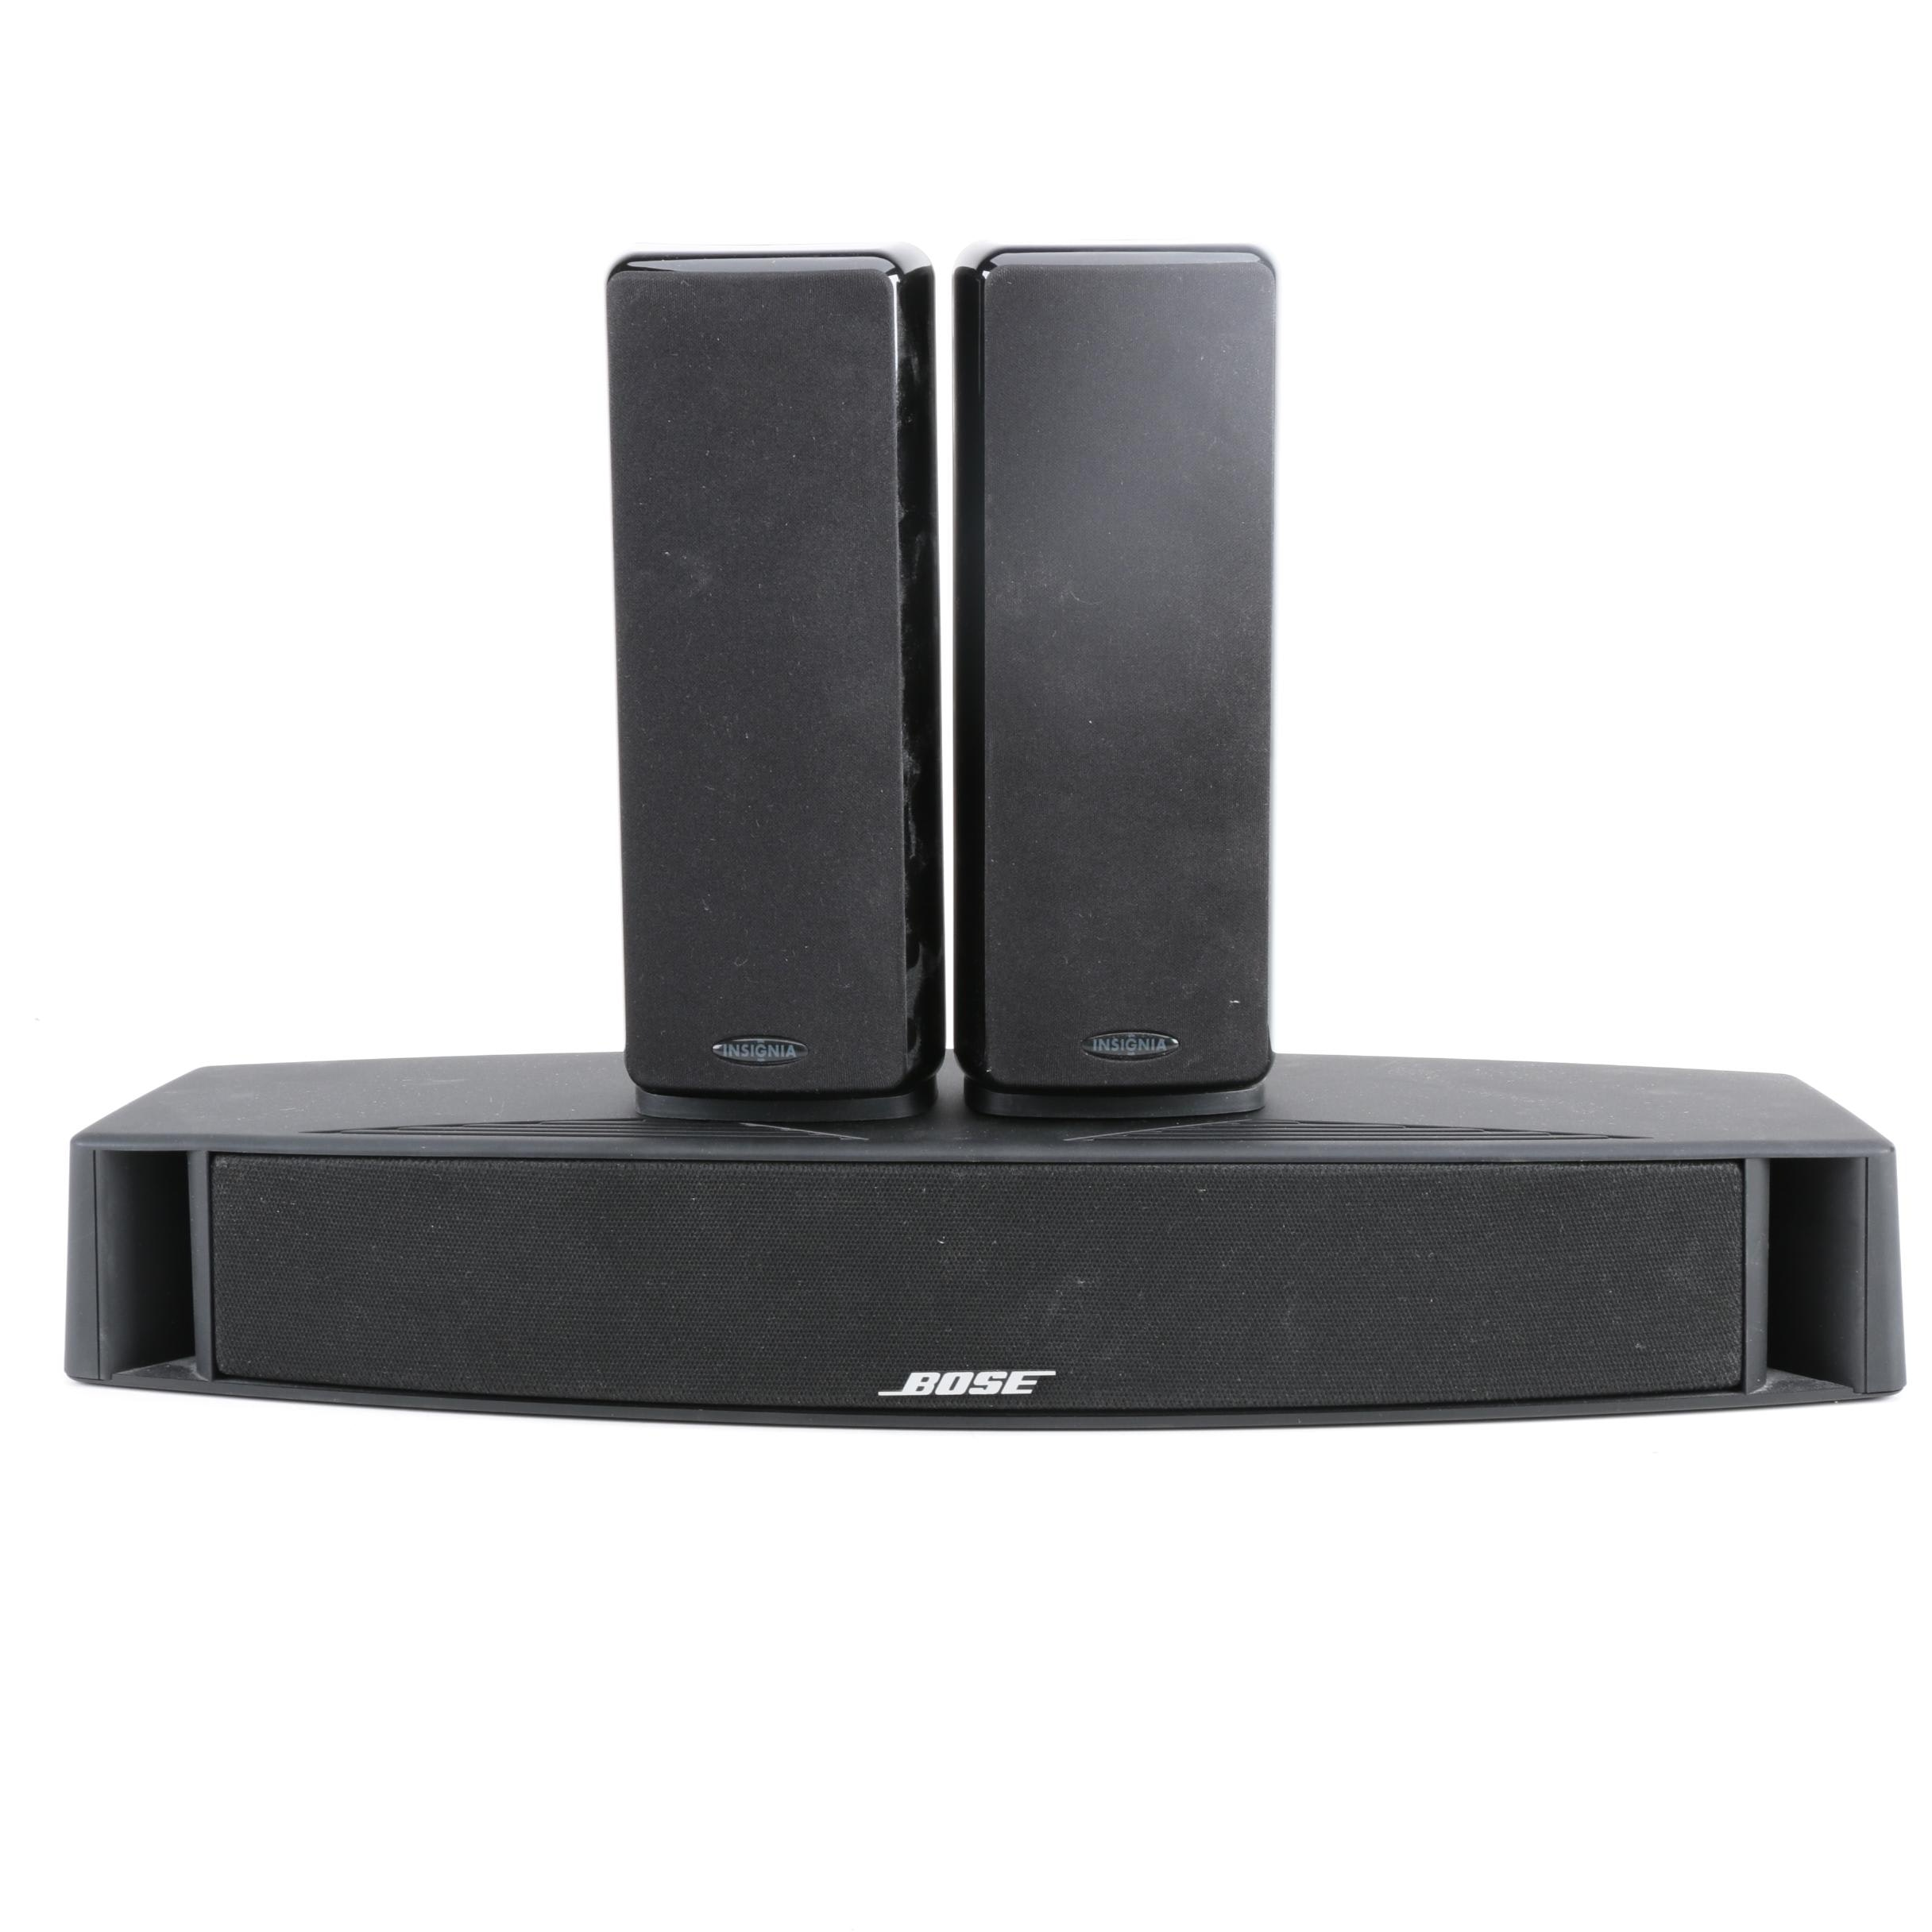 Bose Center Channel Speaker with Insignia Speakers